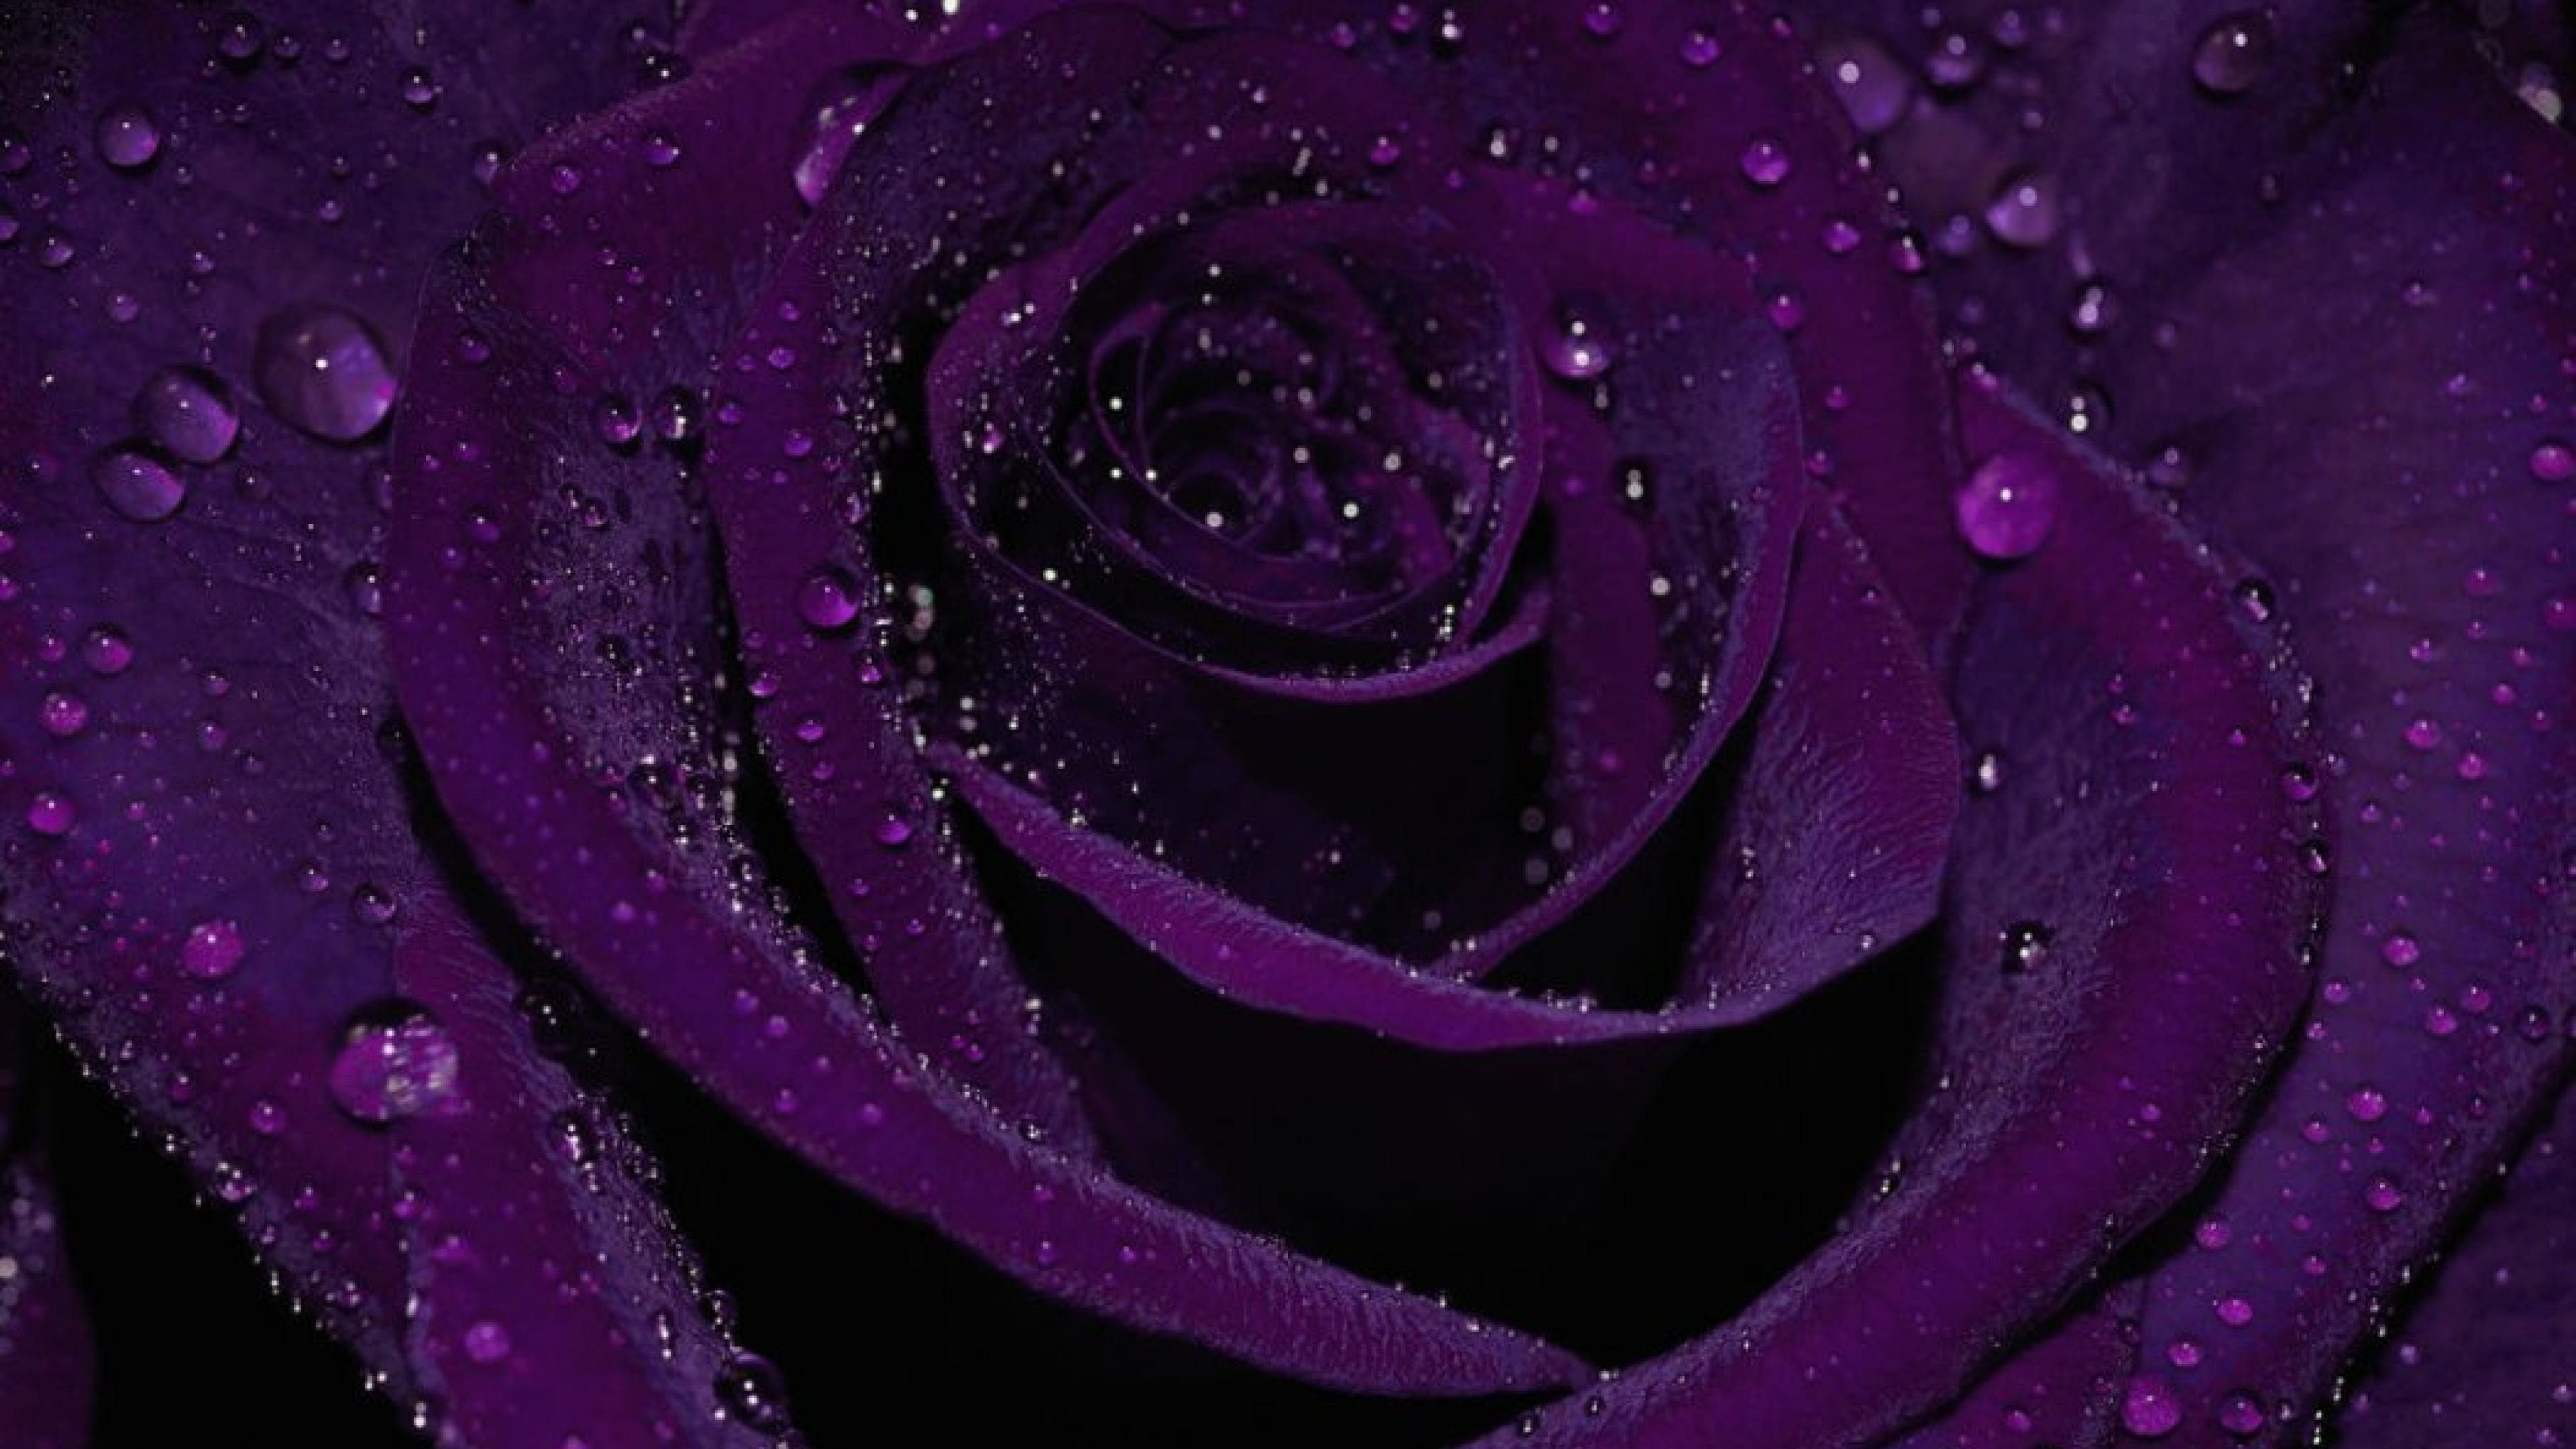 3840x2160 Purple Rose Wallpapers Images Photos Pictures Backgrounds